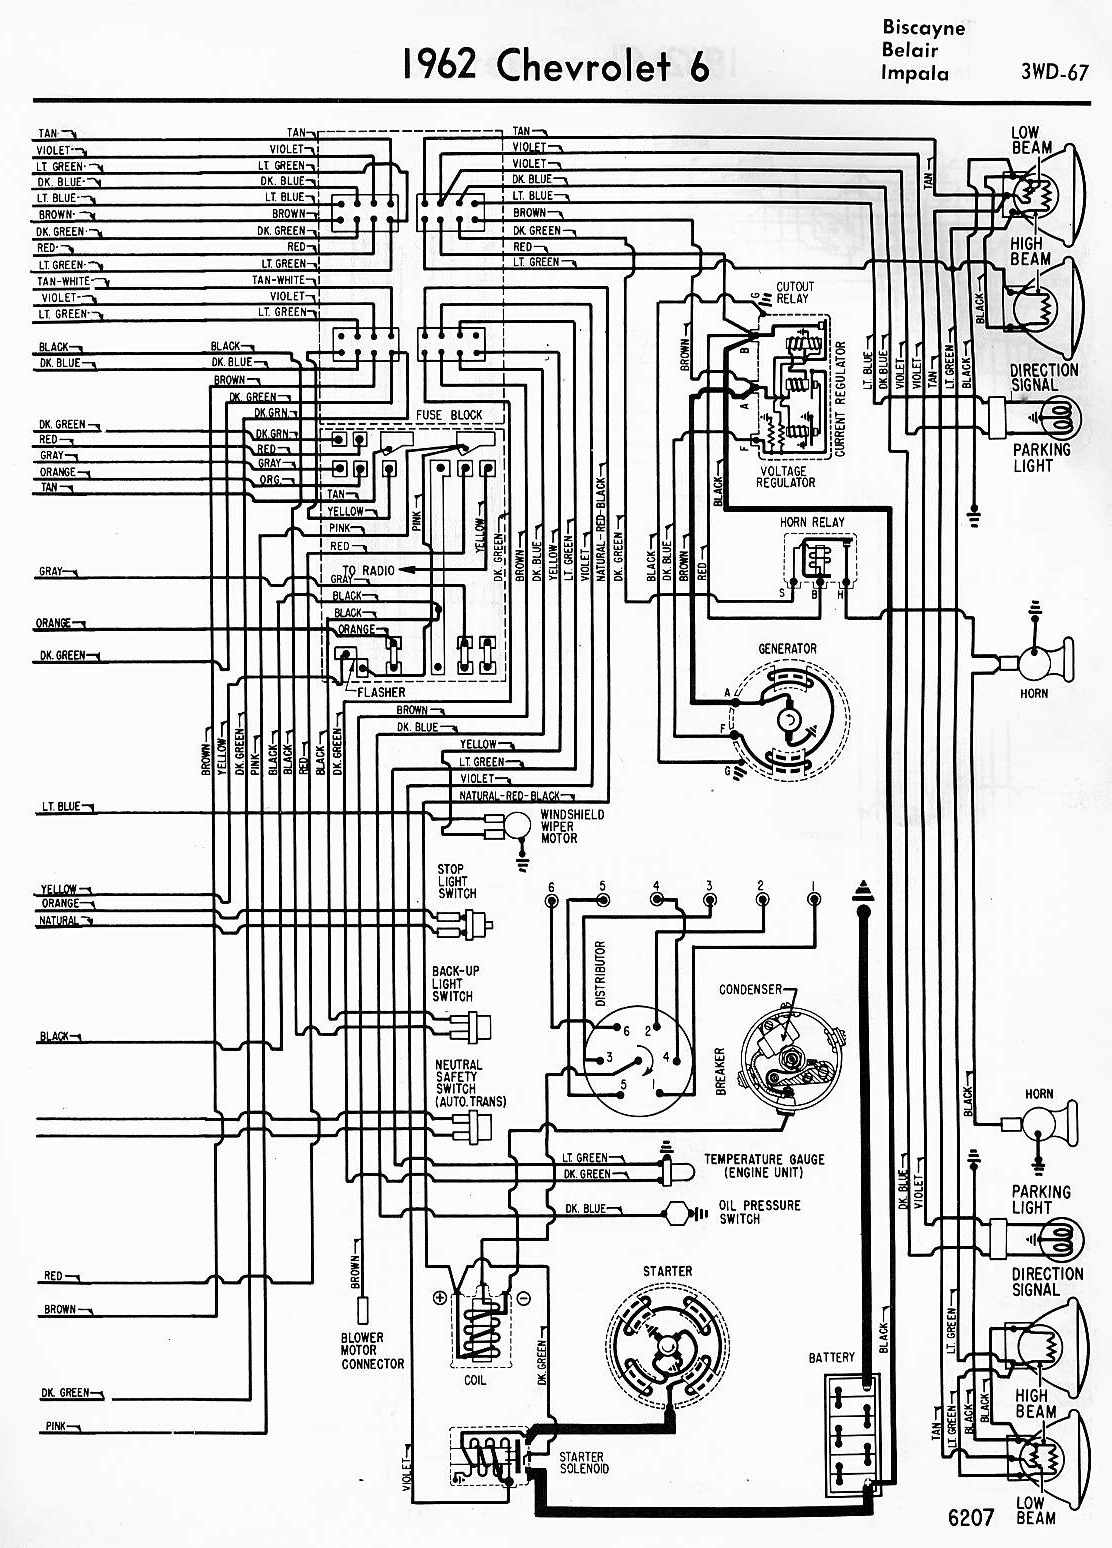 Electrical+Wiring+Diagram+Of+1964+Chevrolet+6 2011 impala wiring diagram 2005 impala ignition wiring diagram 2000 chevrolet impala ignition wiring diagram at crackthecode.co